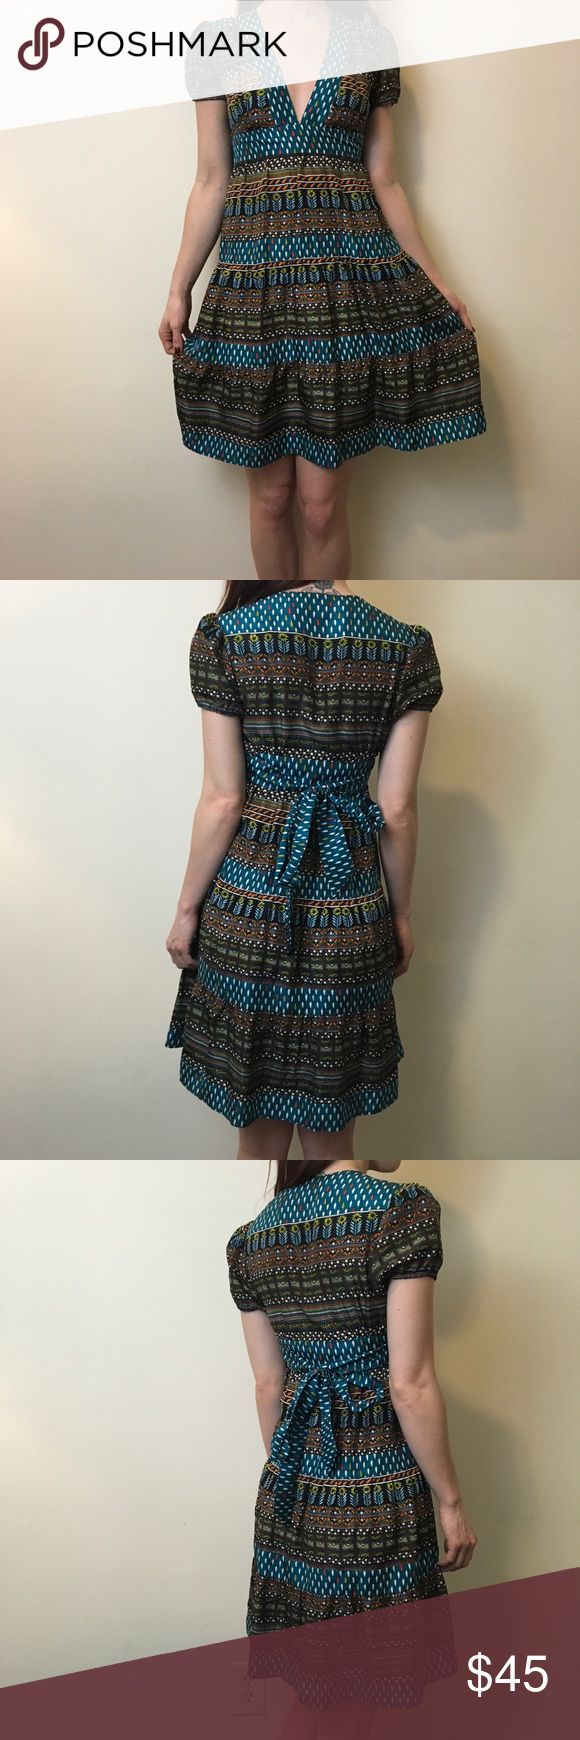 """What Goes Around Comes Around Anthro Silk Dress What goes around comes around by Anthro dress with shirt sleeves and a waist tie- not lined and is a size 0. Worn once and is super cute paired with boots! Bust 15"""" waist 13"""" hips 18"""" length 36"""" Anthropologie Dresses Midi"""